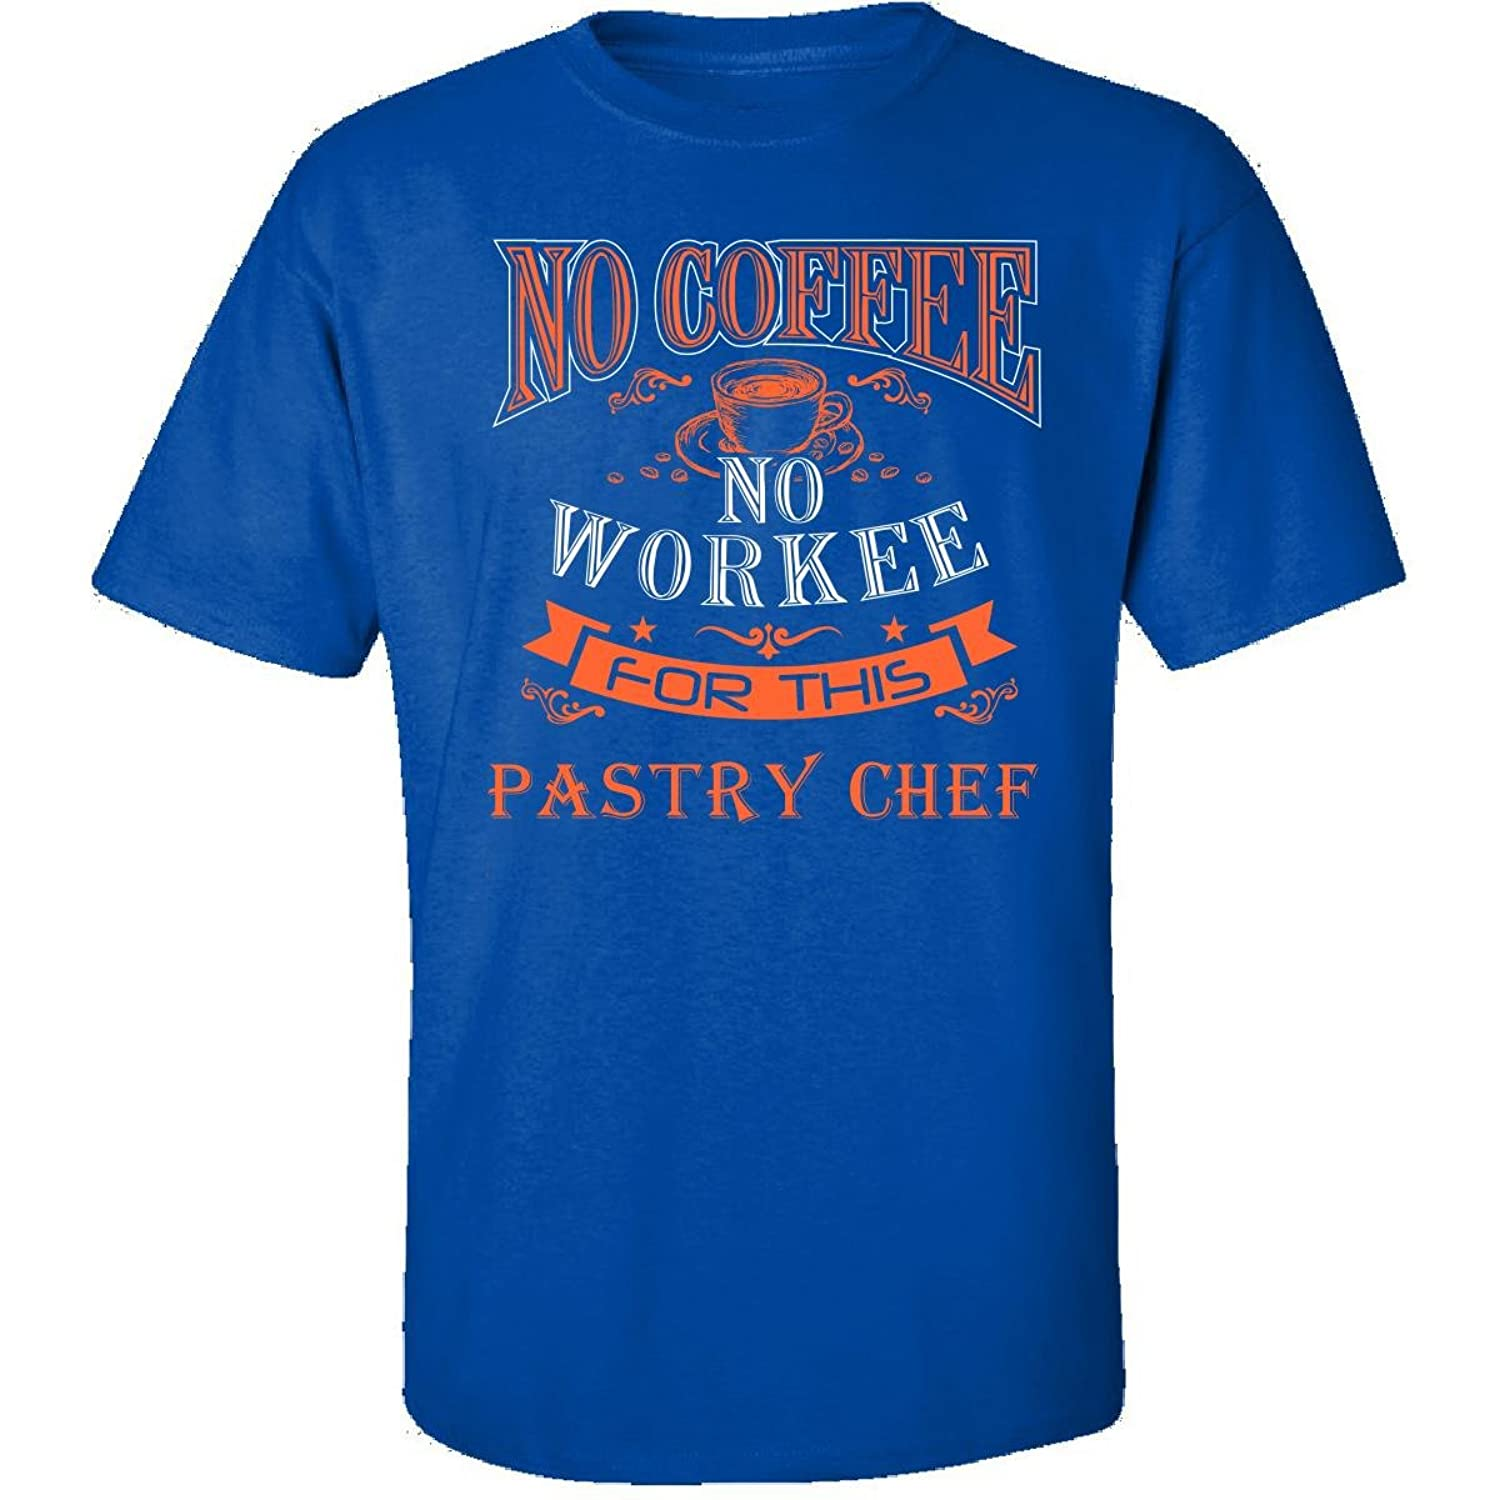 No Coffee No Workee For This Pastry Chef - Adult Shirt